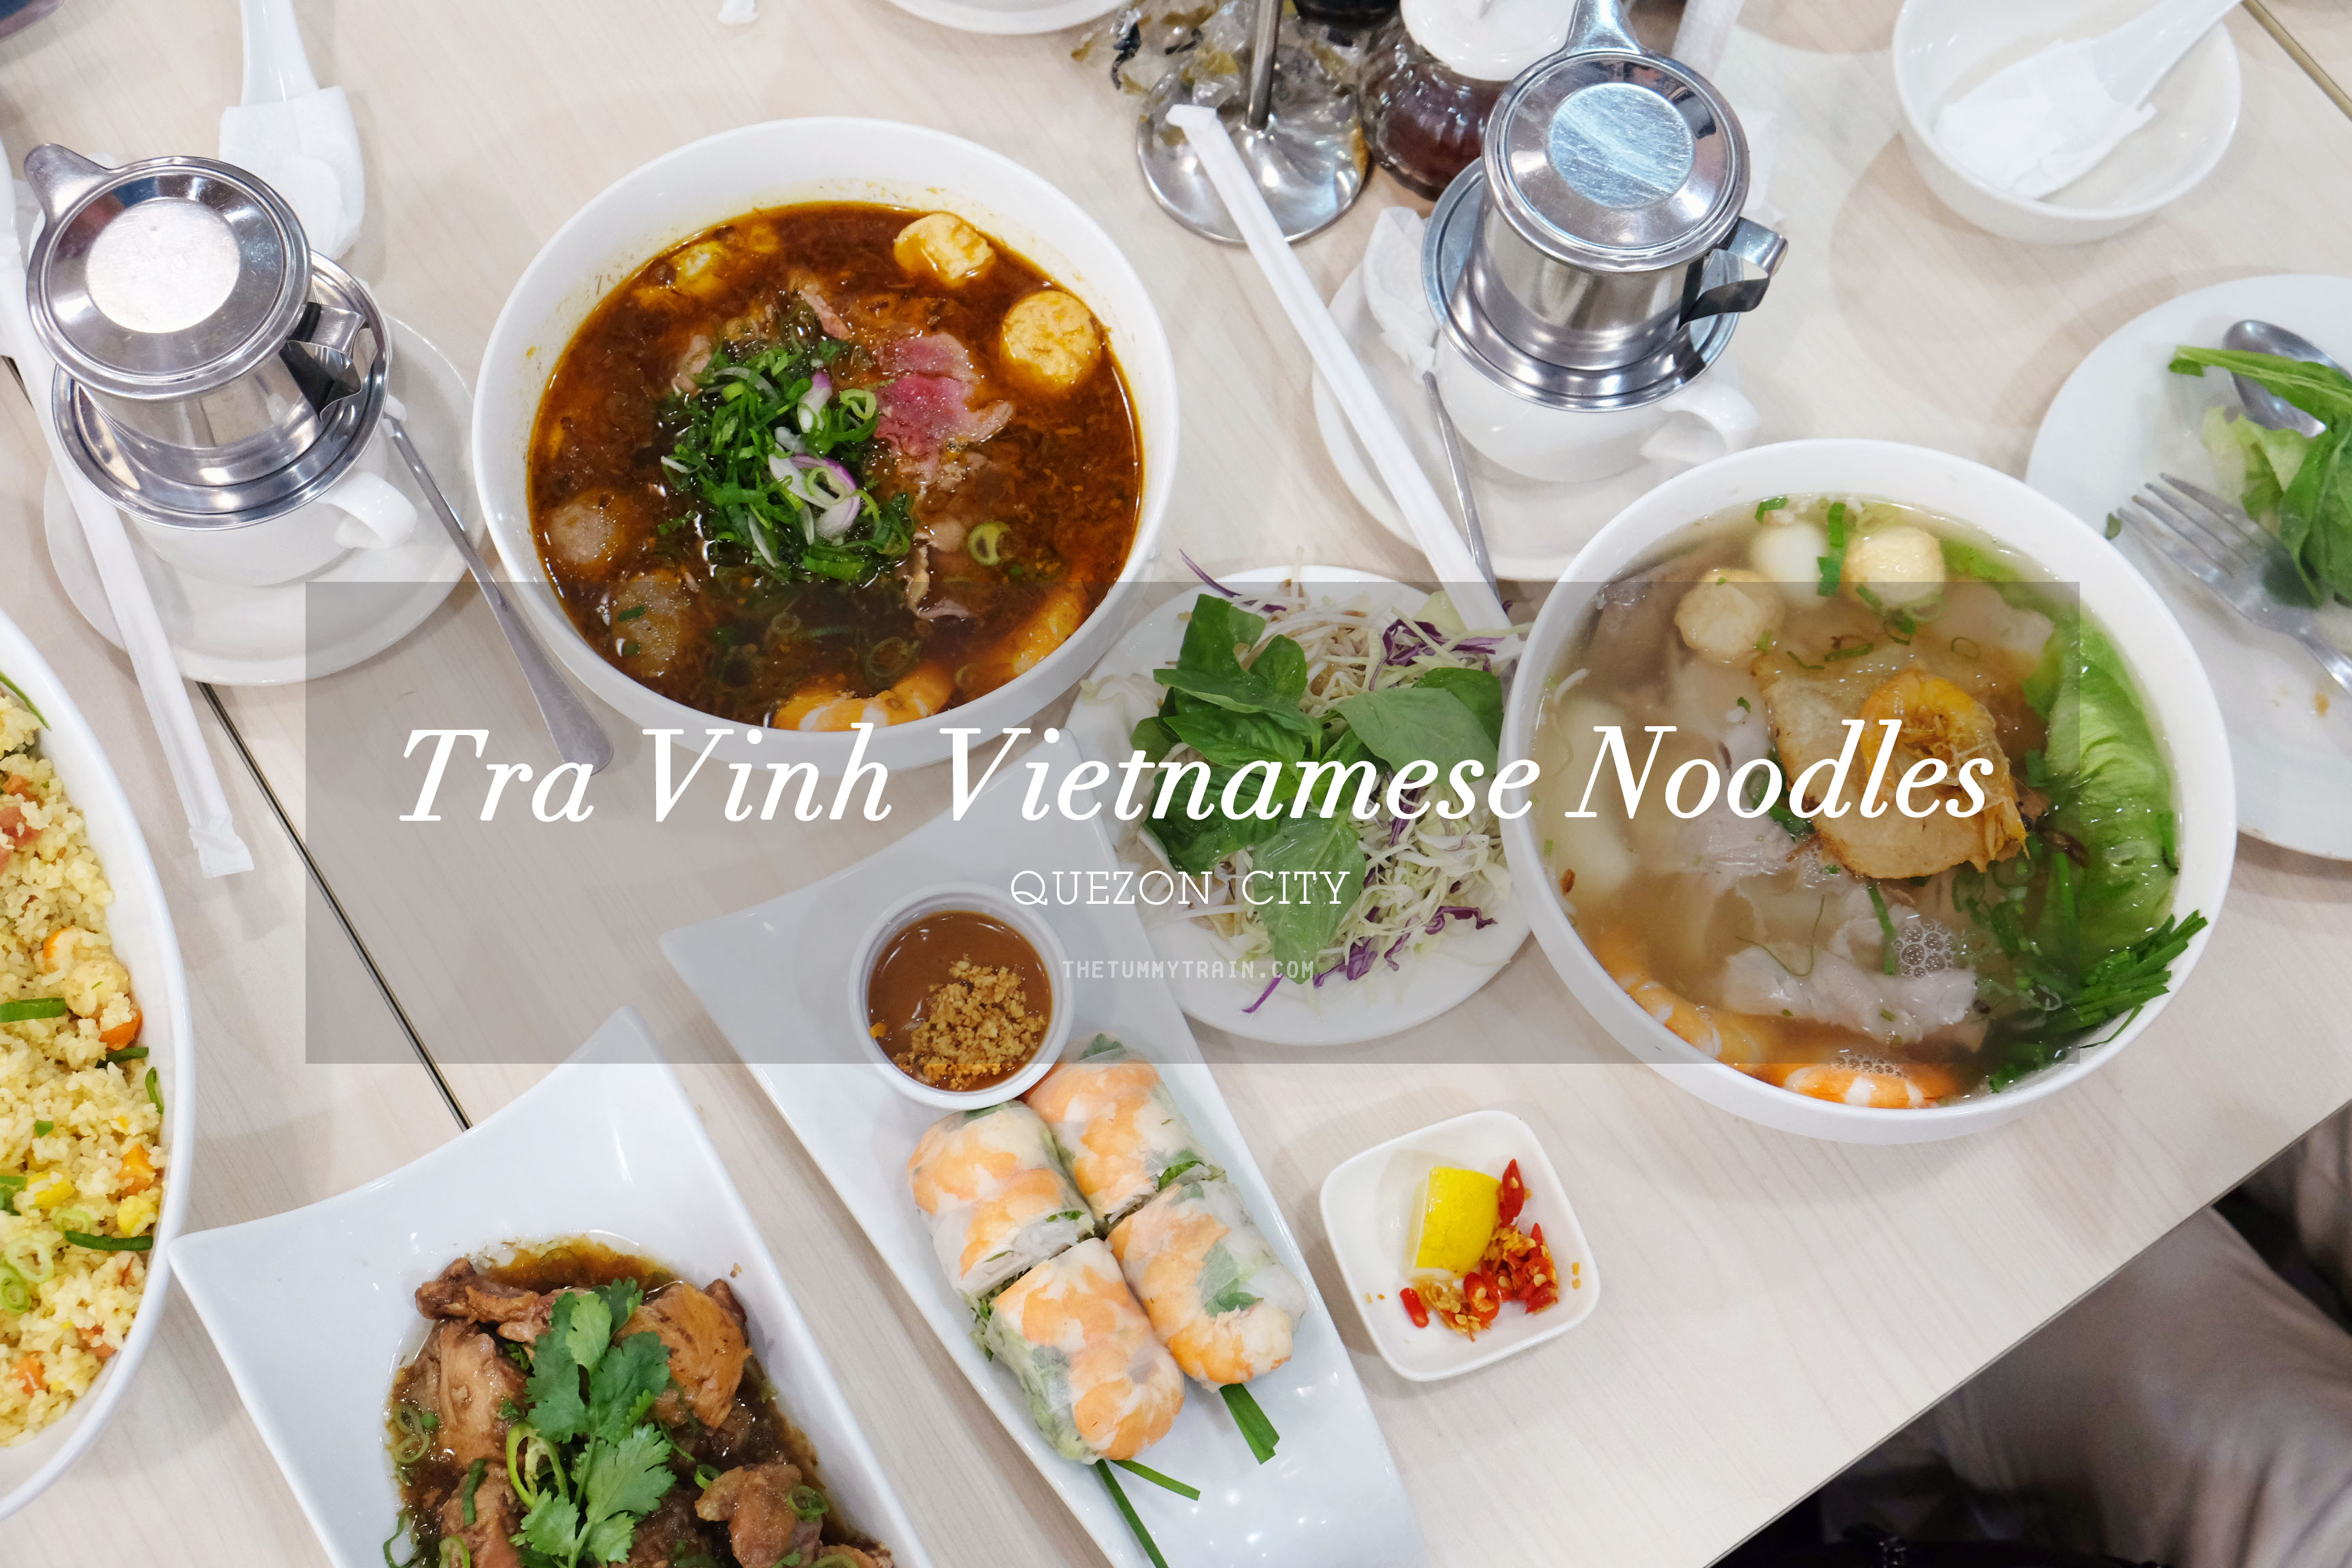 Tra Vinh TITLE - Tra Vinh is the place to go for Vietnamese food cravings